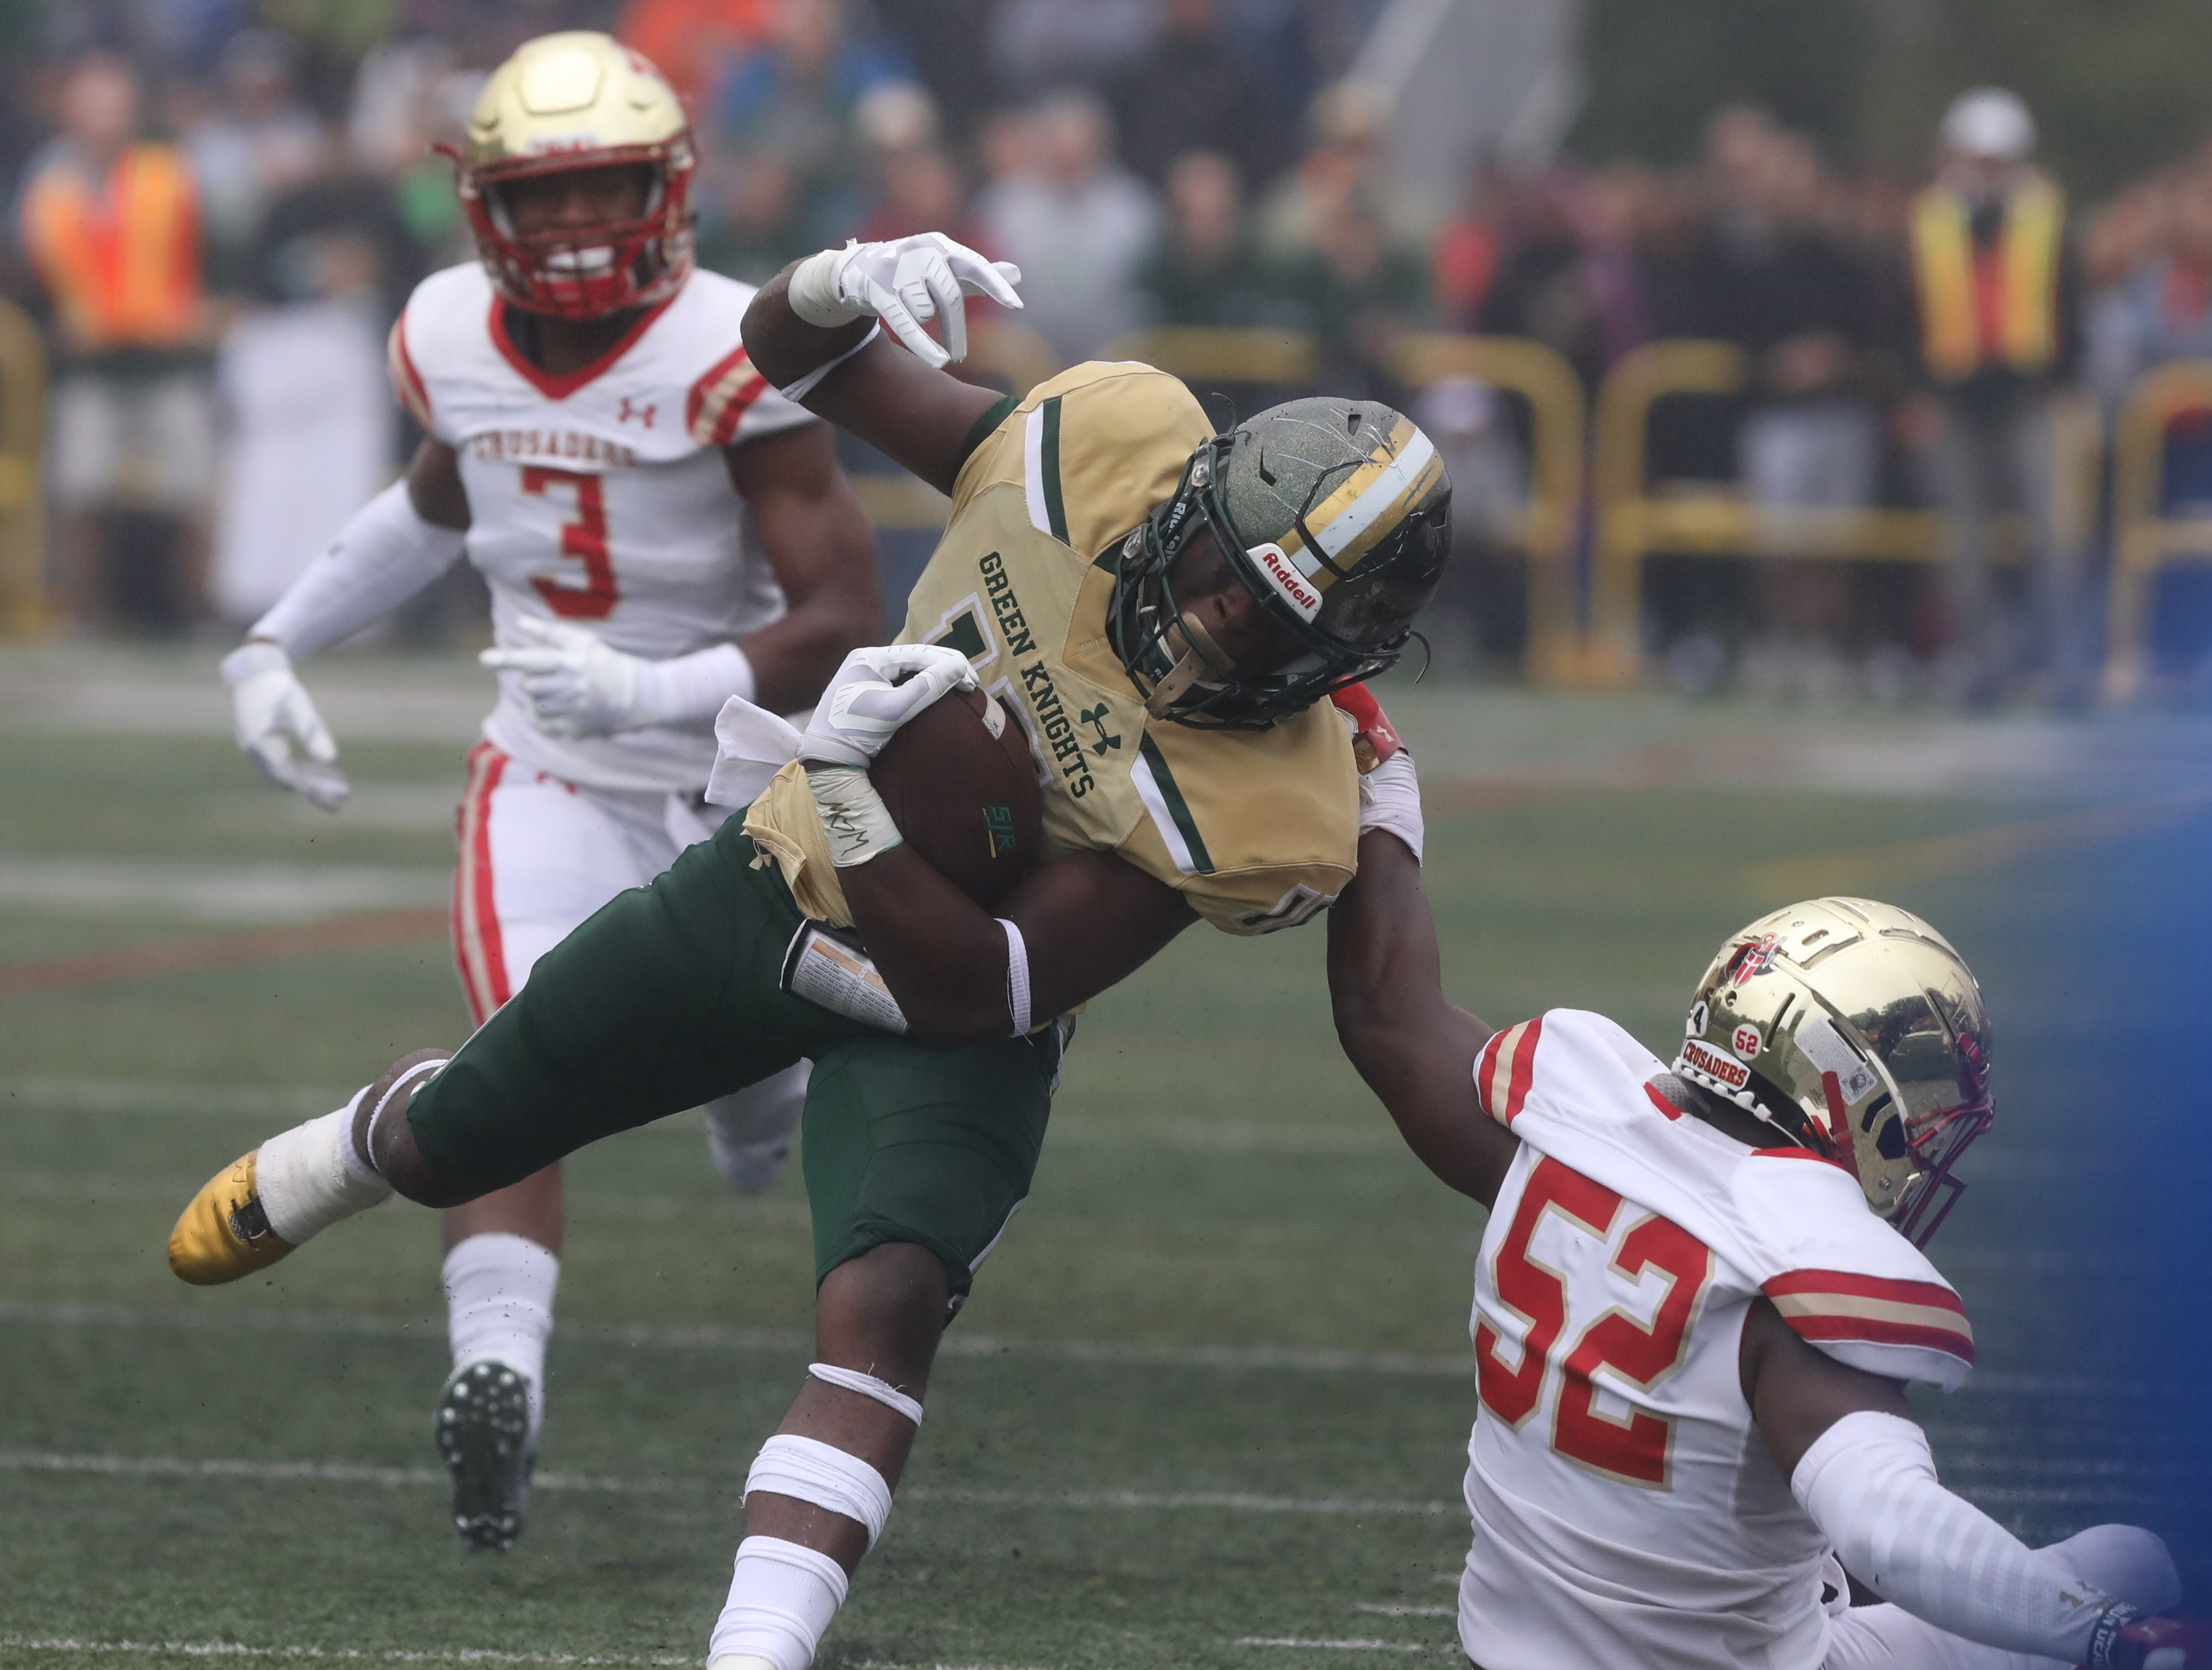 Audric Estime of St.Joseph is horse collared on this play  in the first half.